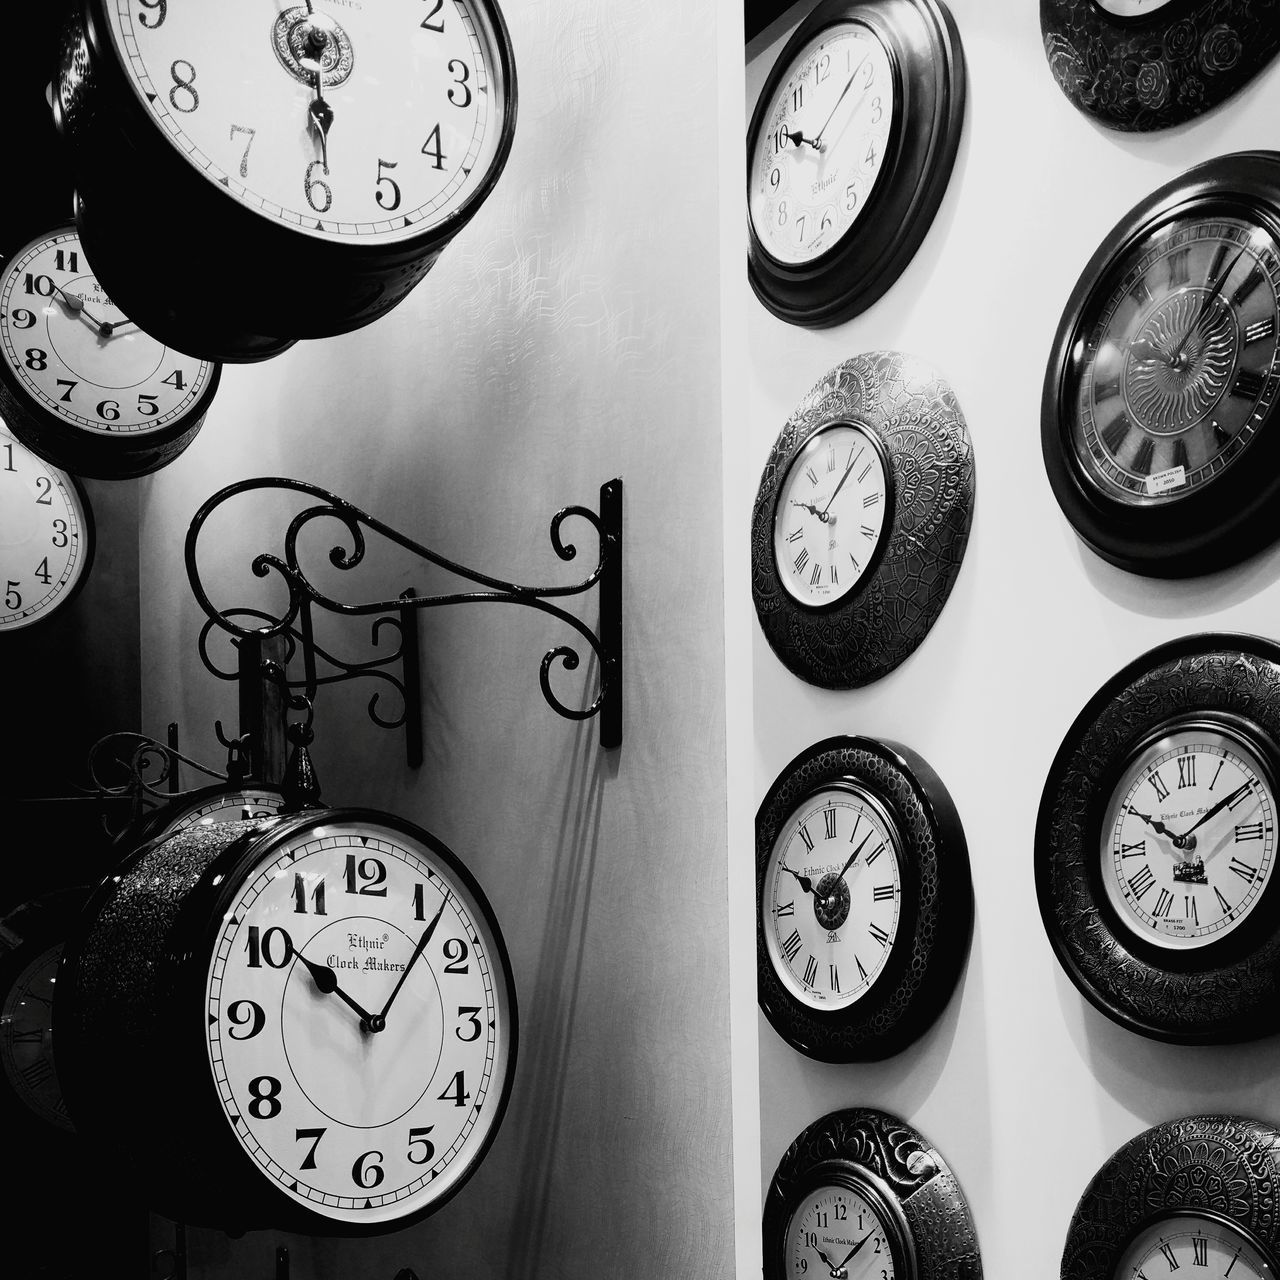 clock, indoors, no people, time, variation, large group of objects, hanging, close-up, pressure gauge, clock face, gauge, day, minute hand